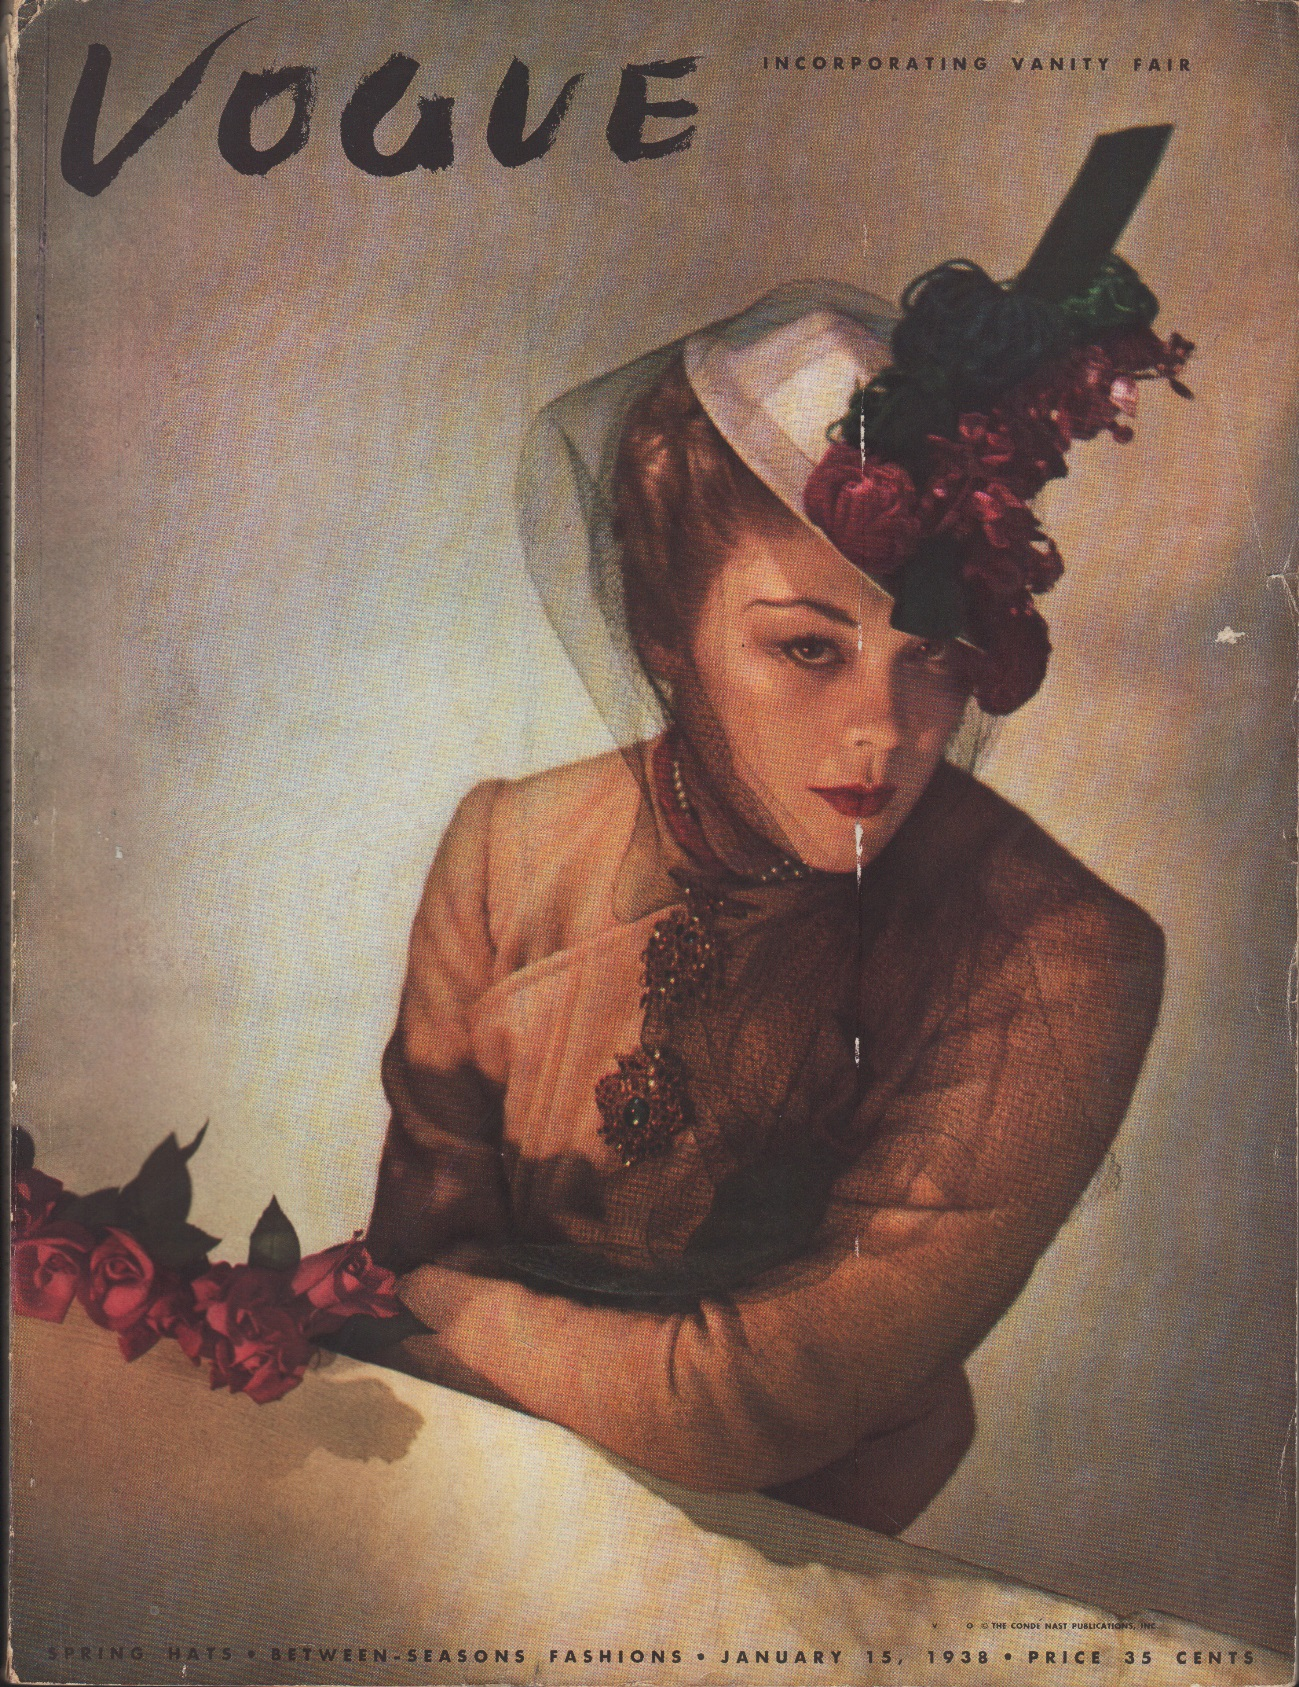 Image for Vogue Magazine, January 15, 1938 Spring Hats - Between Seasons Fashions